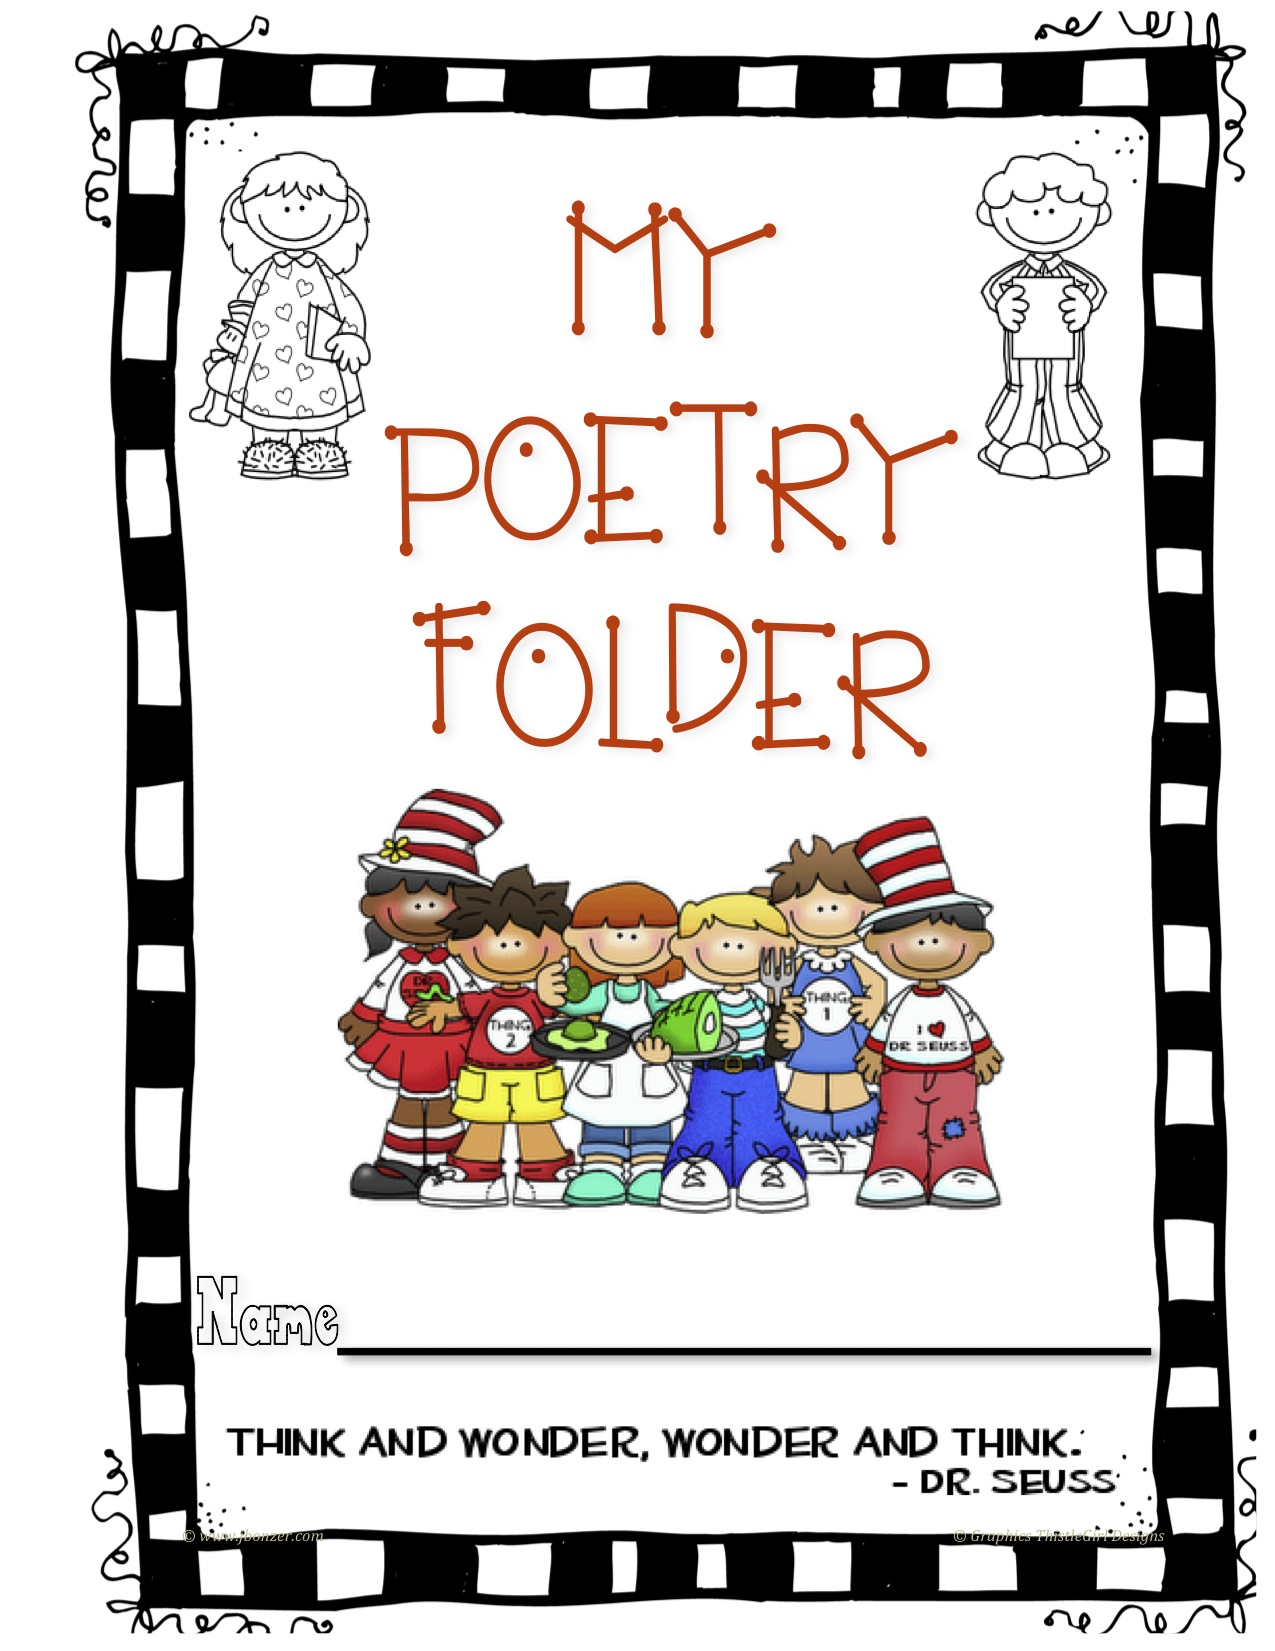 Dr Seuss Poetry Folder 2